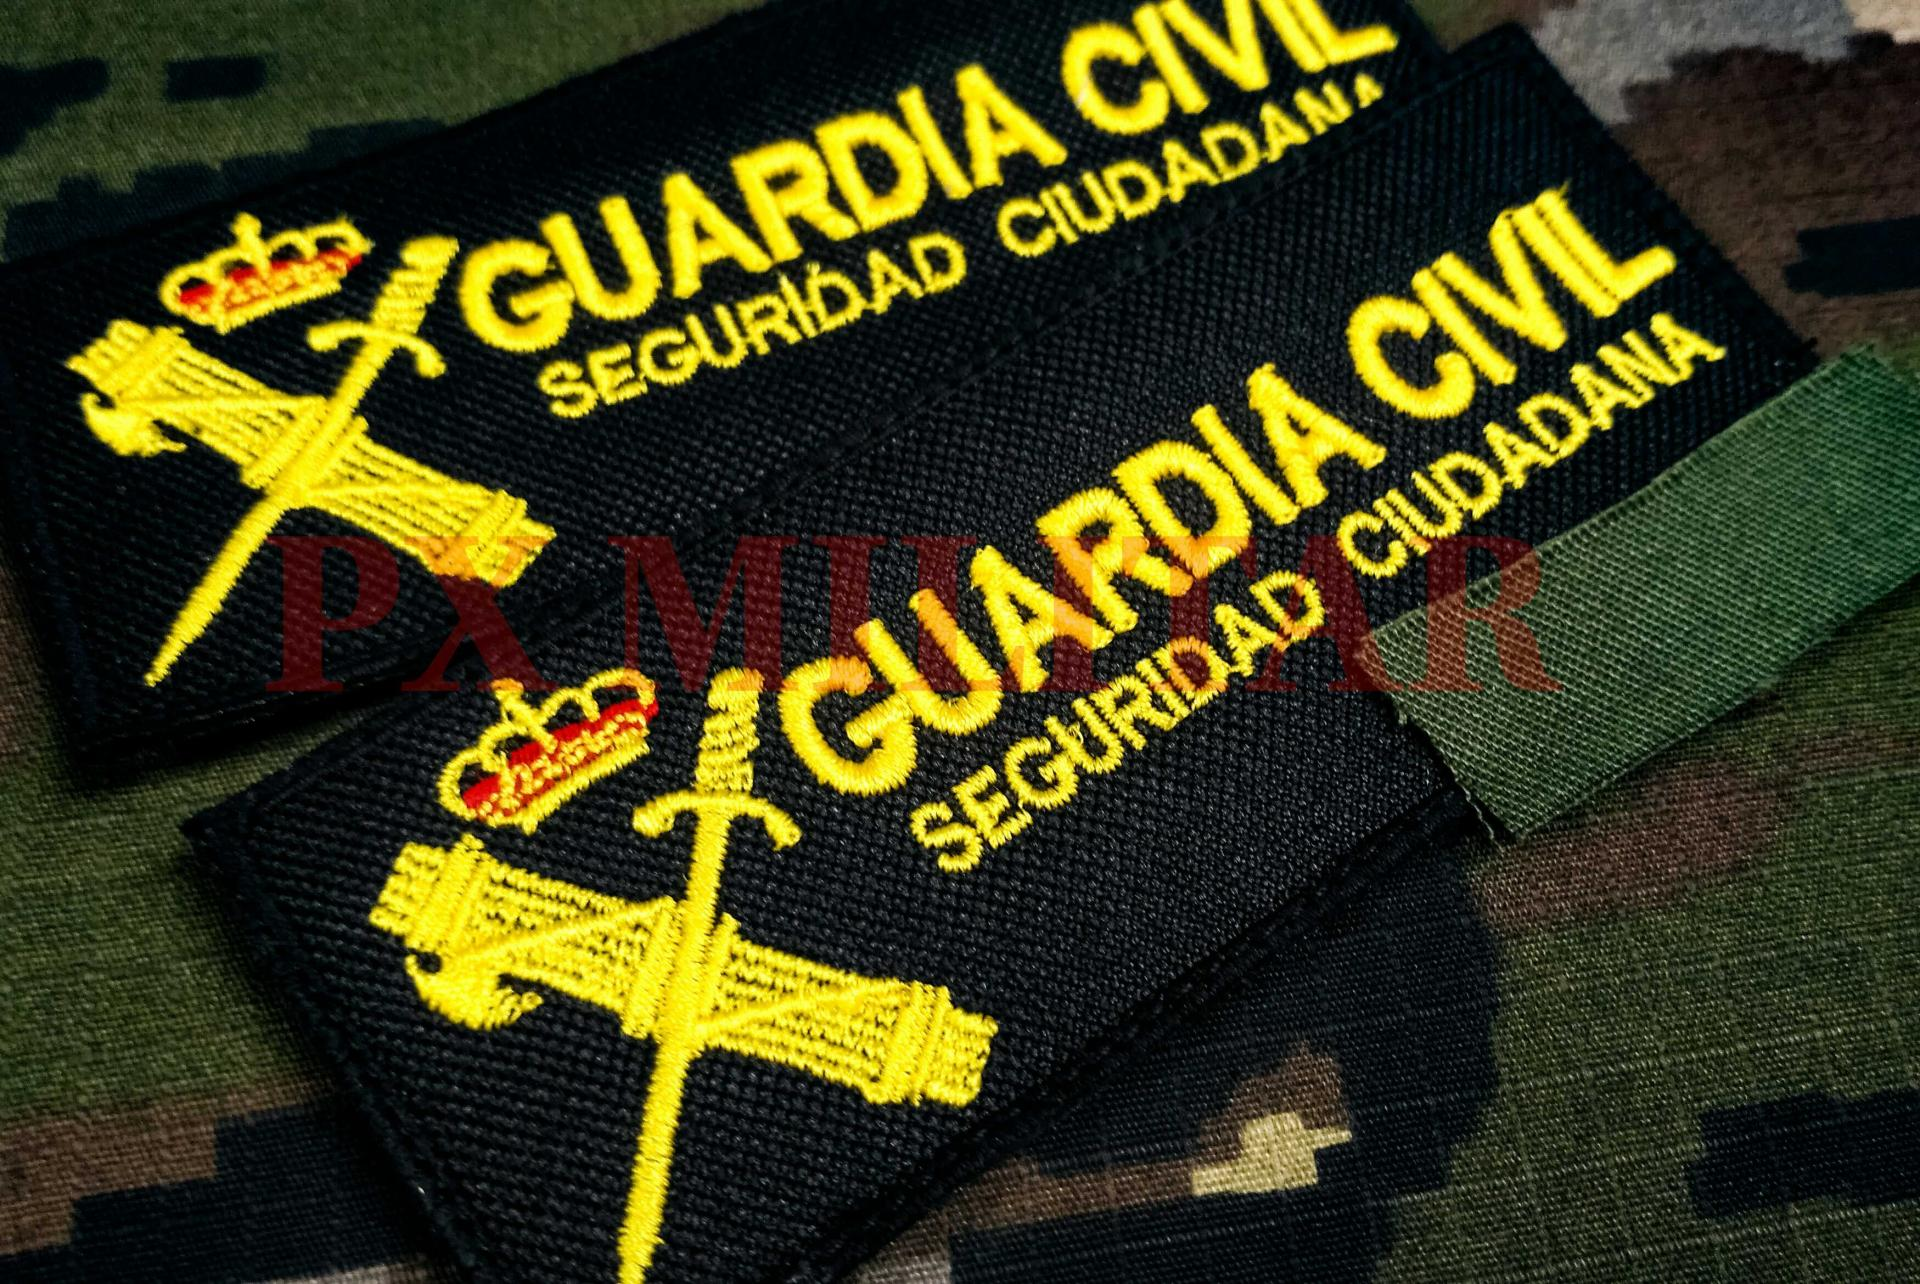 GALLETA SEGURIDAD CIUDADANA GUARDIA CIVIL COLOR